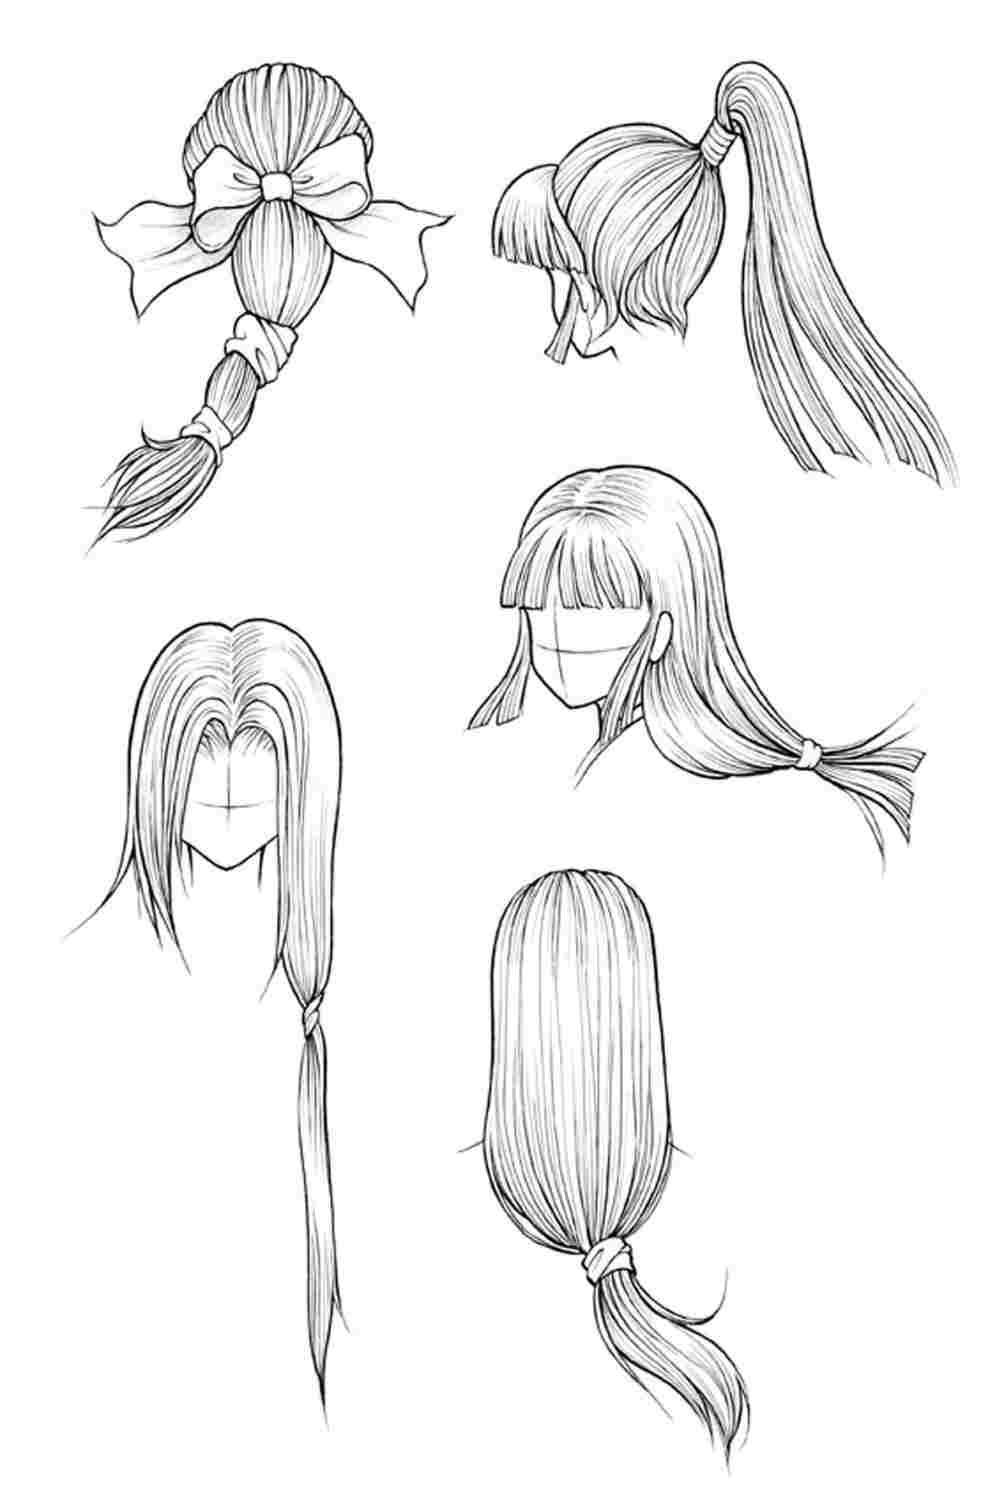 Anime Hair Sketch At Paintingvalleycom Explore Collection Of Long Hair Drawing Manga Hair Hair Sketch